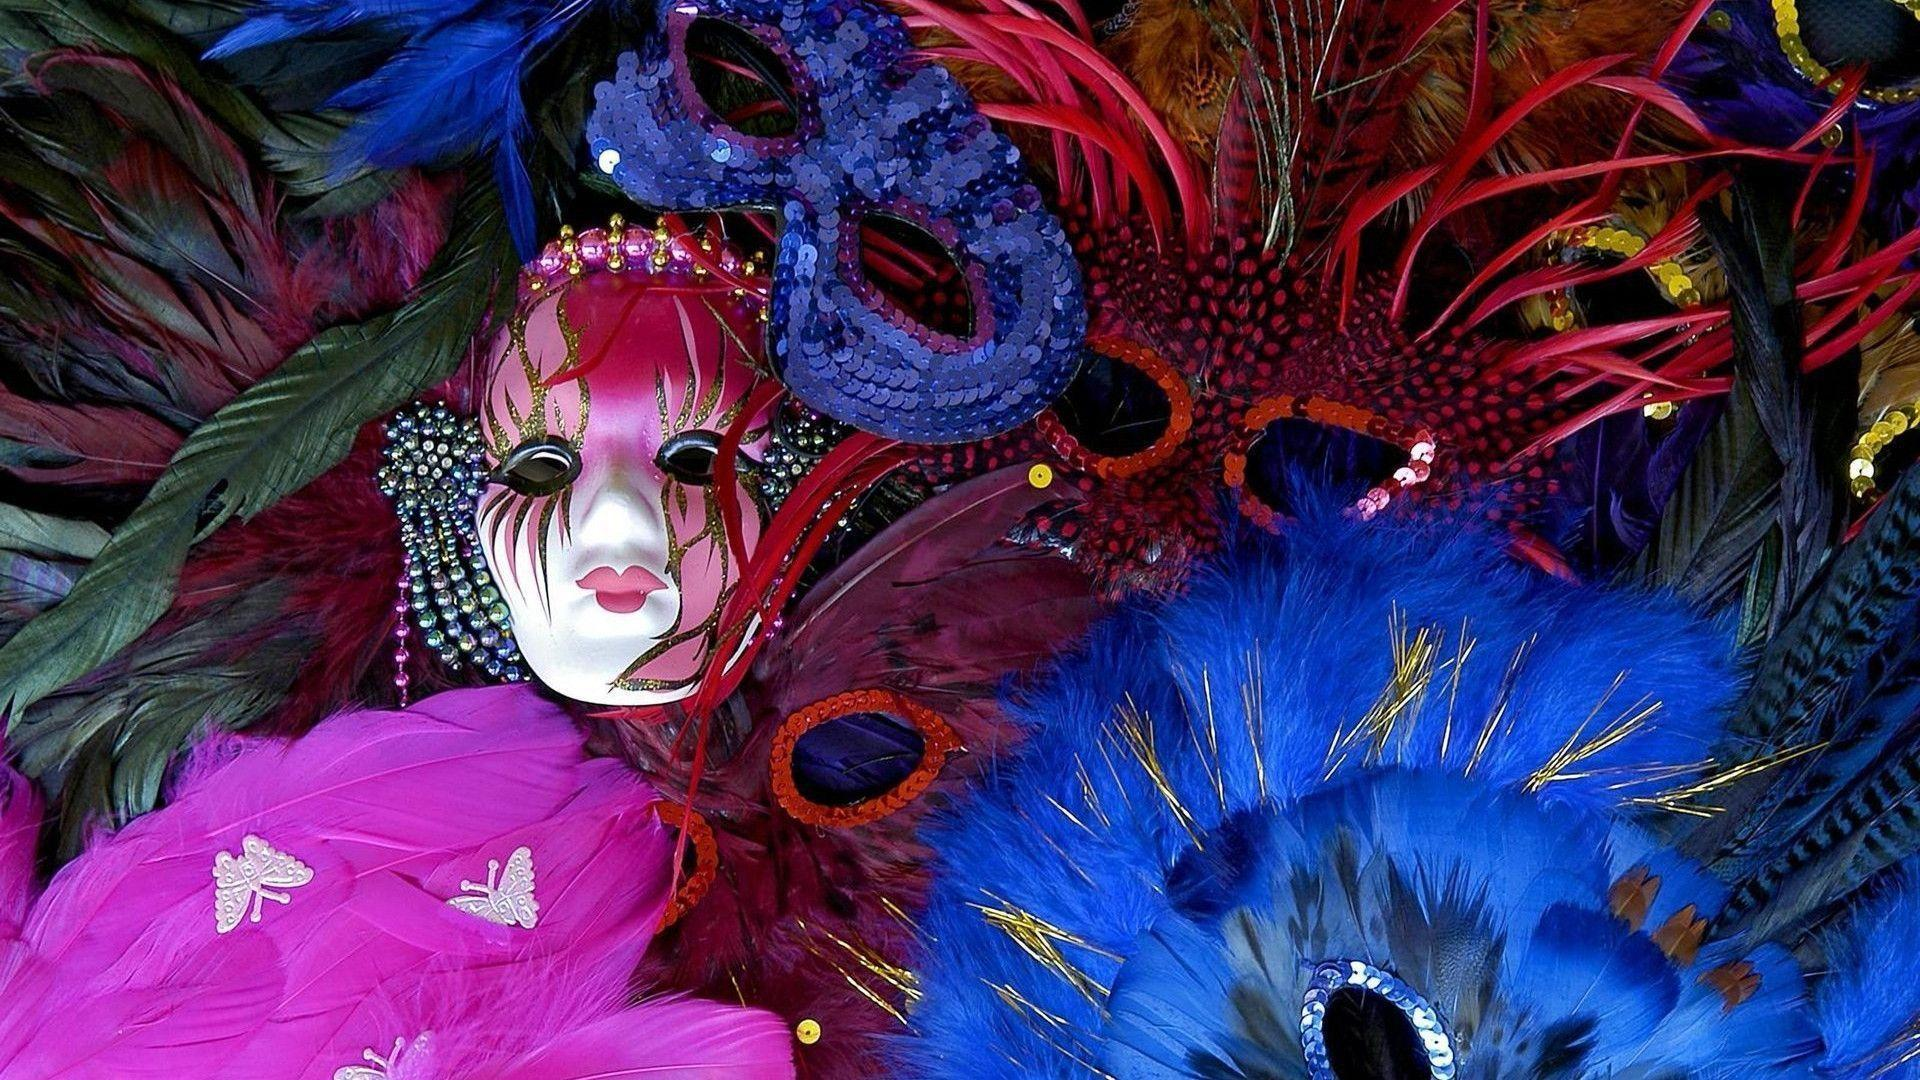 Enjoy our wallpapers of the month!!! Mardi Gras